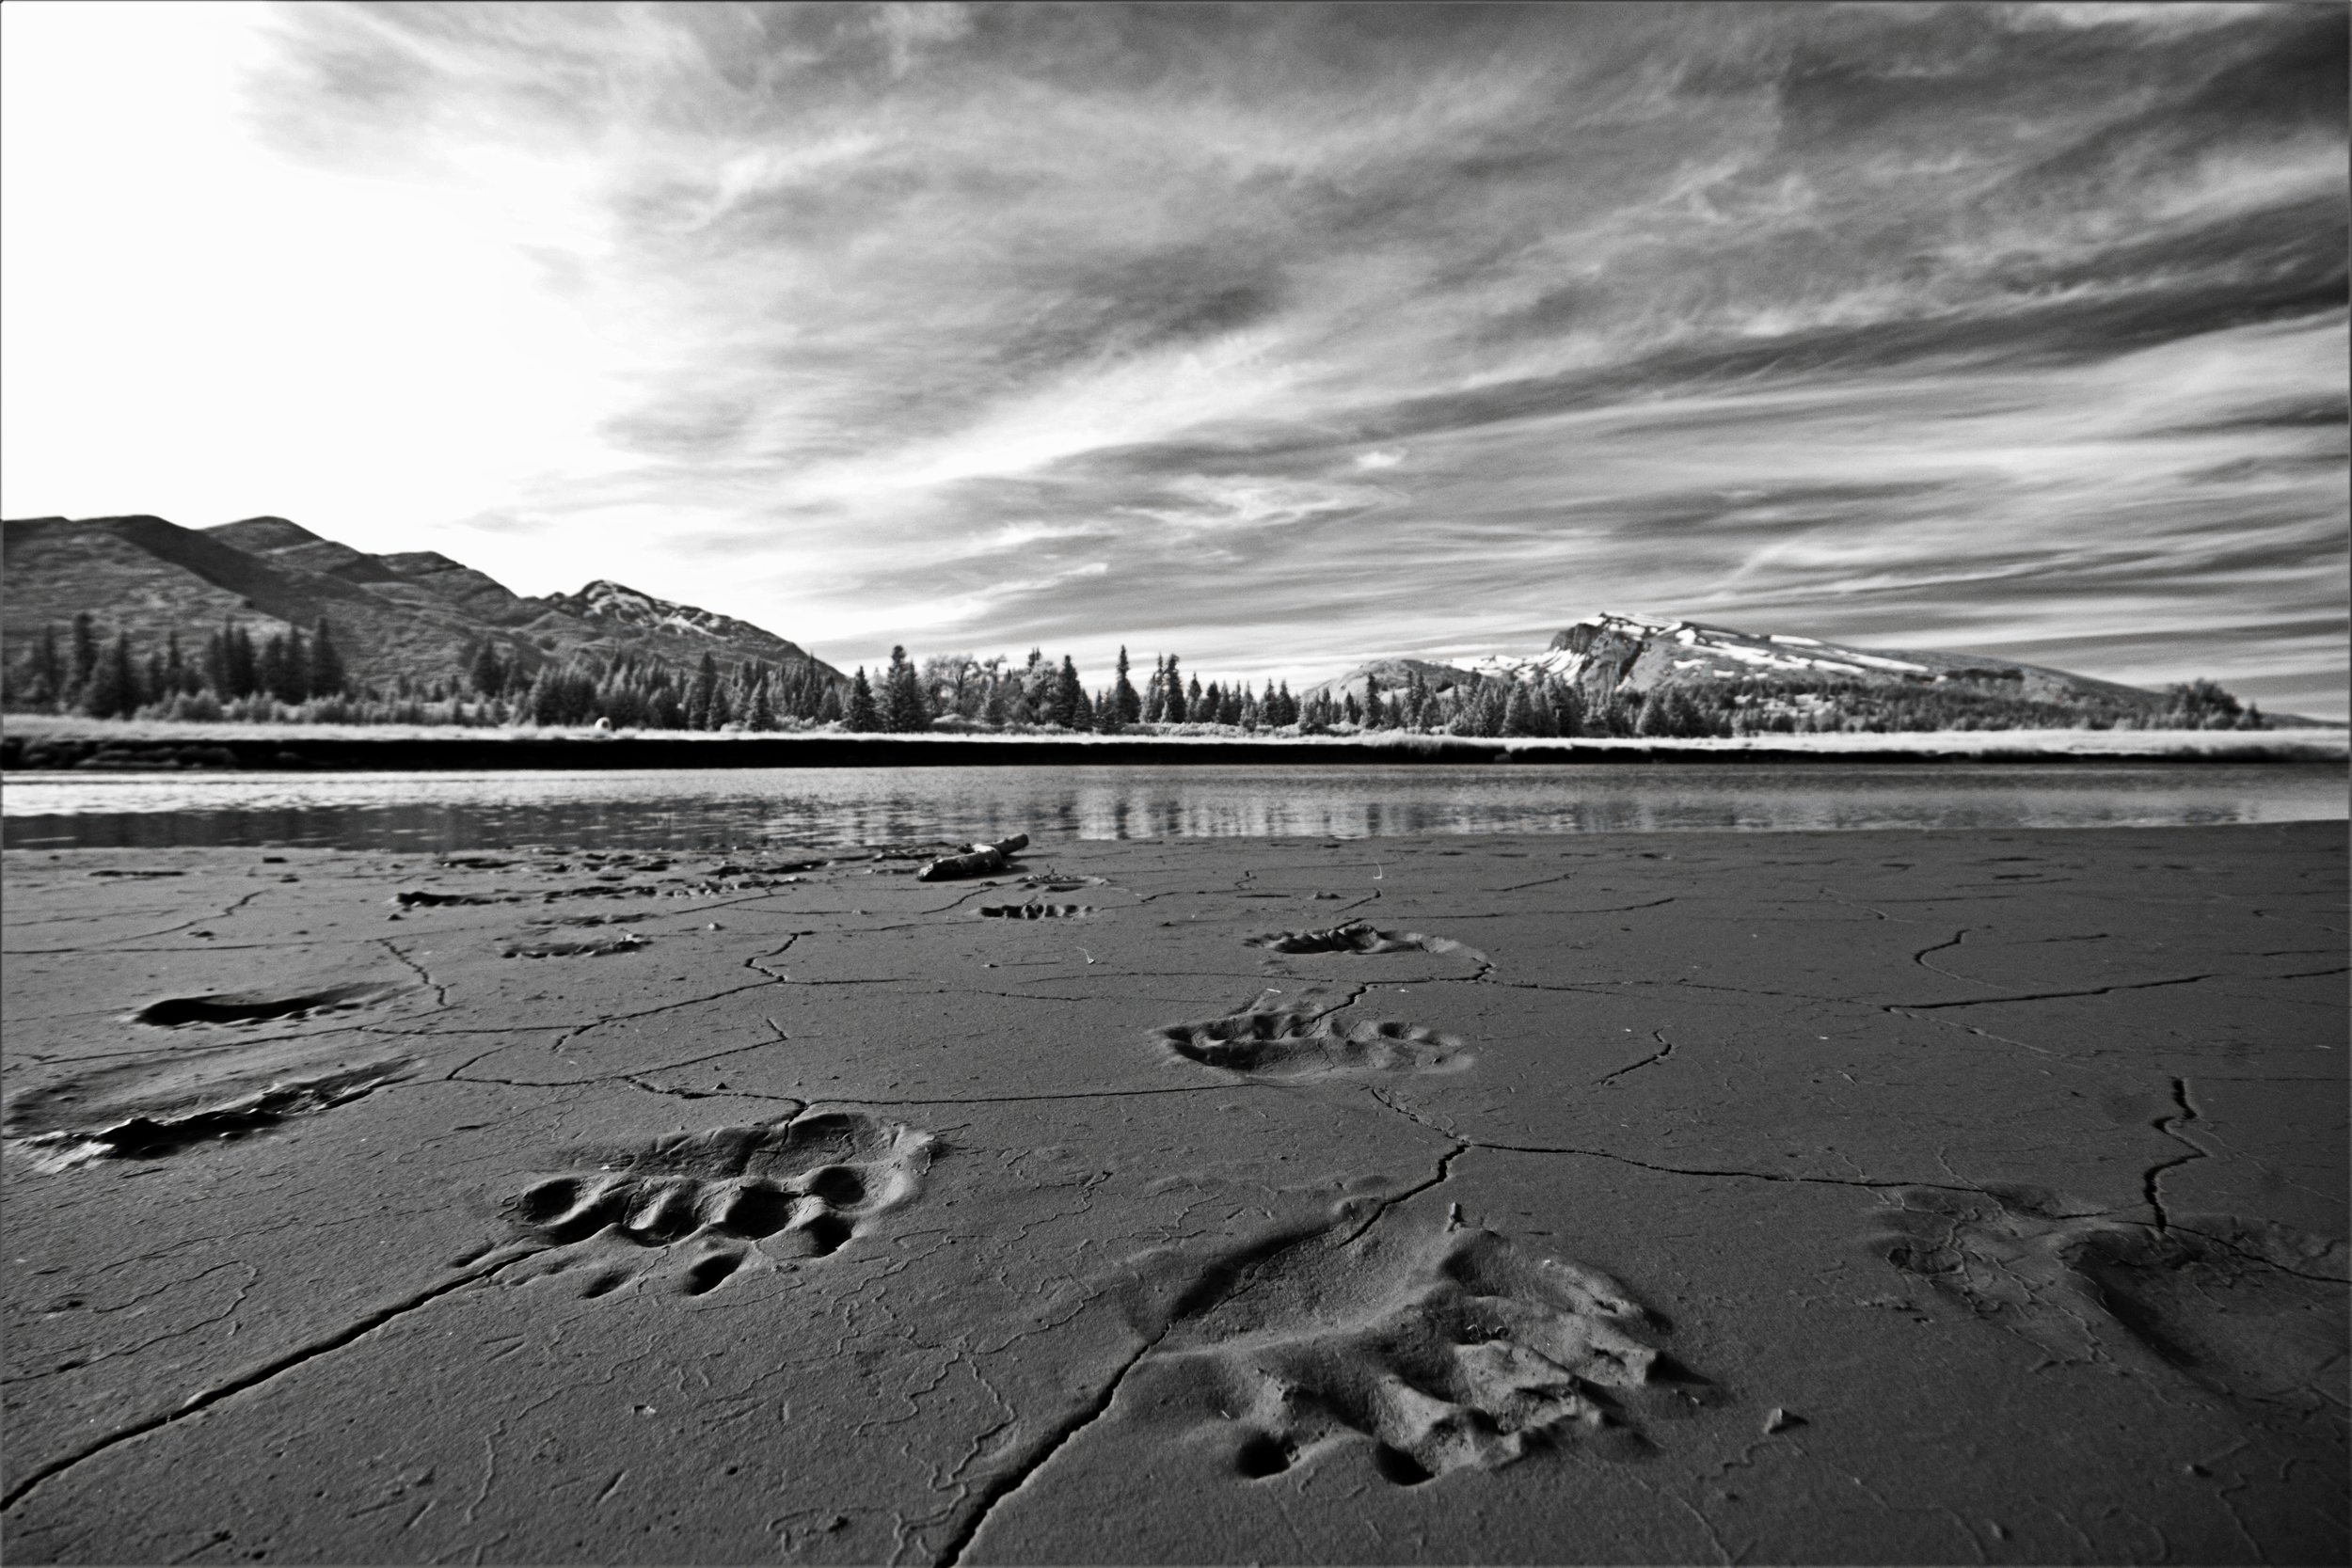 Black and white photo of bear prints on a beach